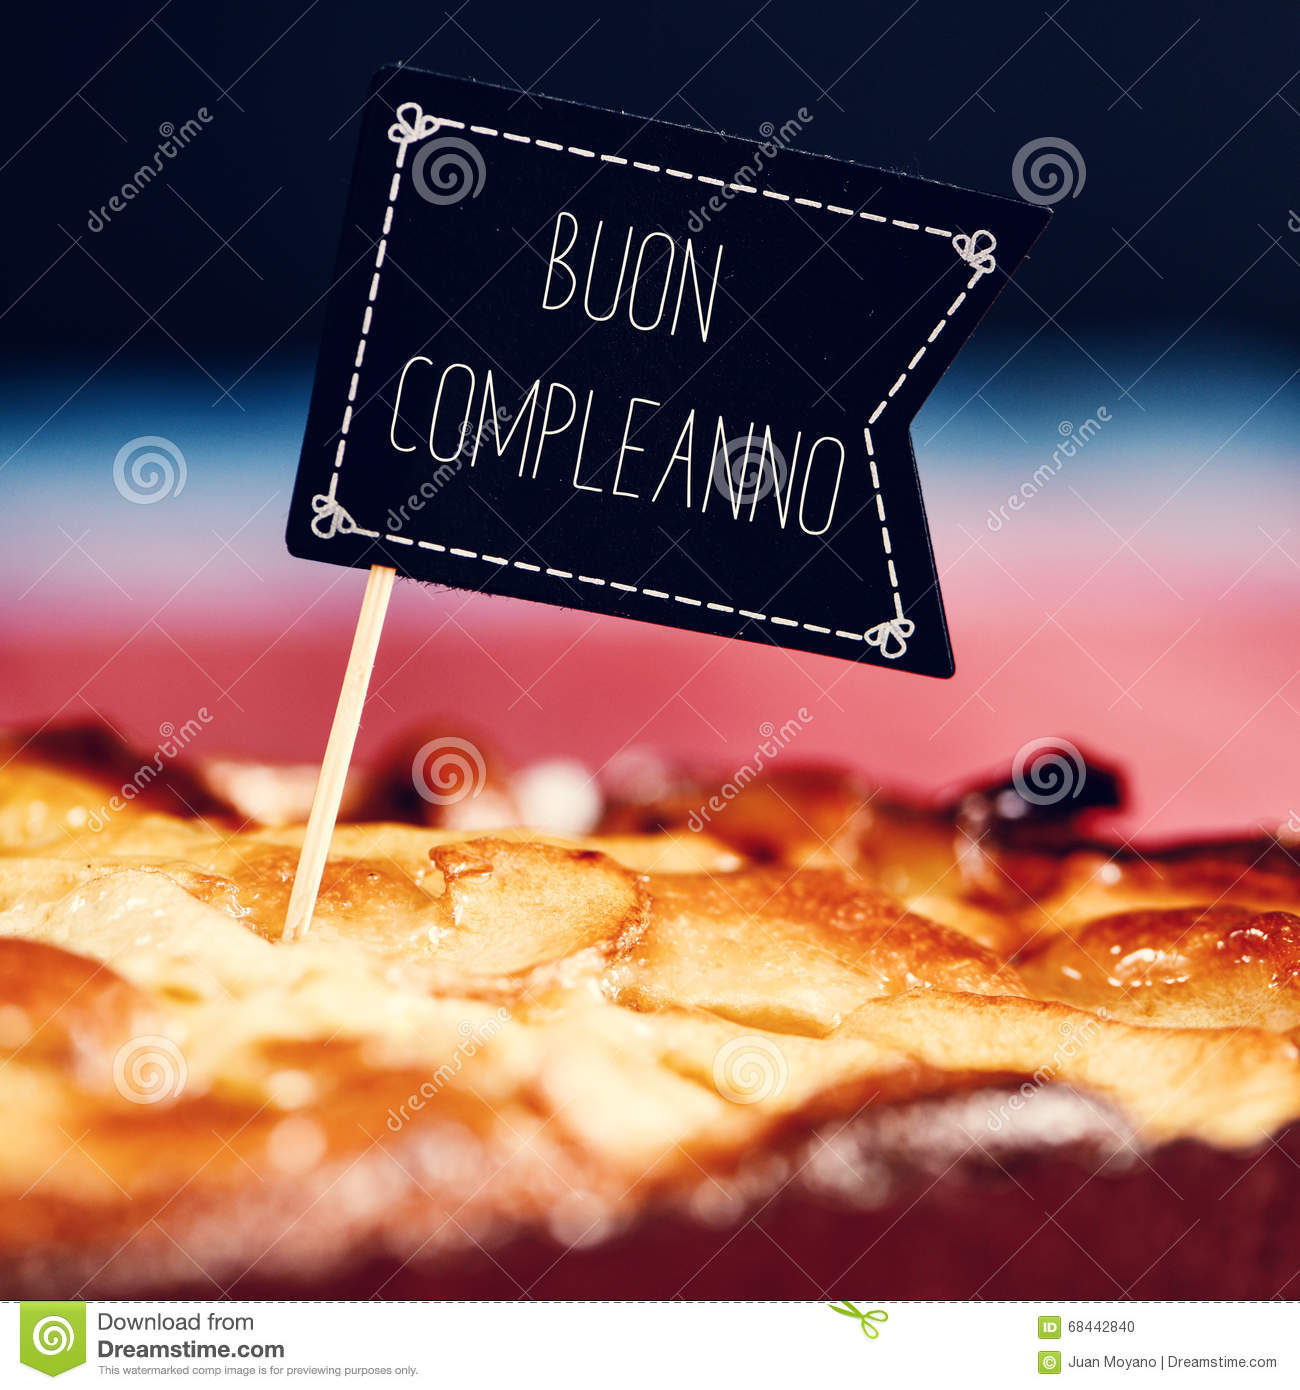 Cake With Text Buon Compleanno, Happy Birthday In Italian